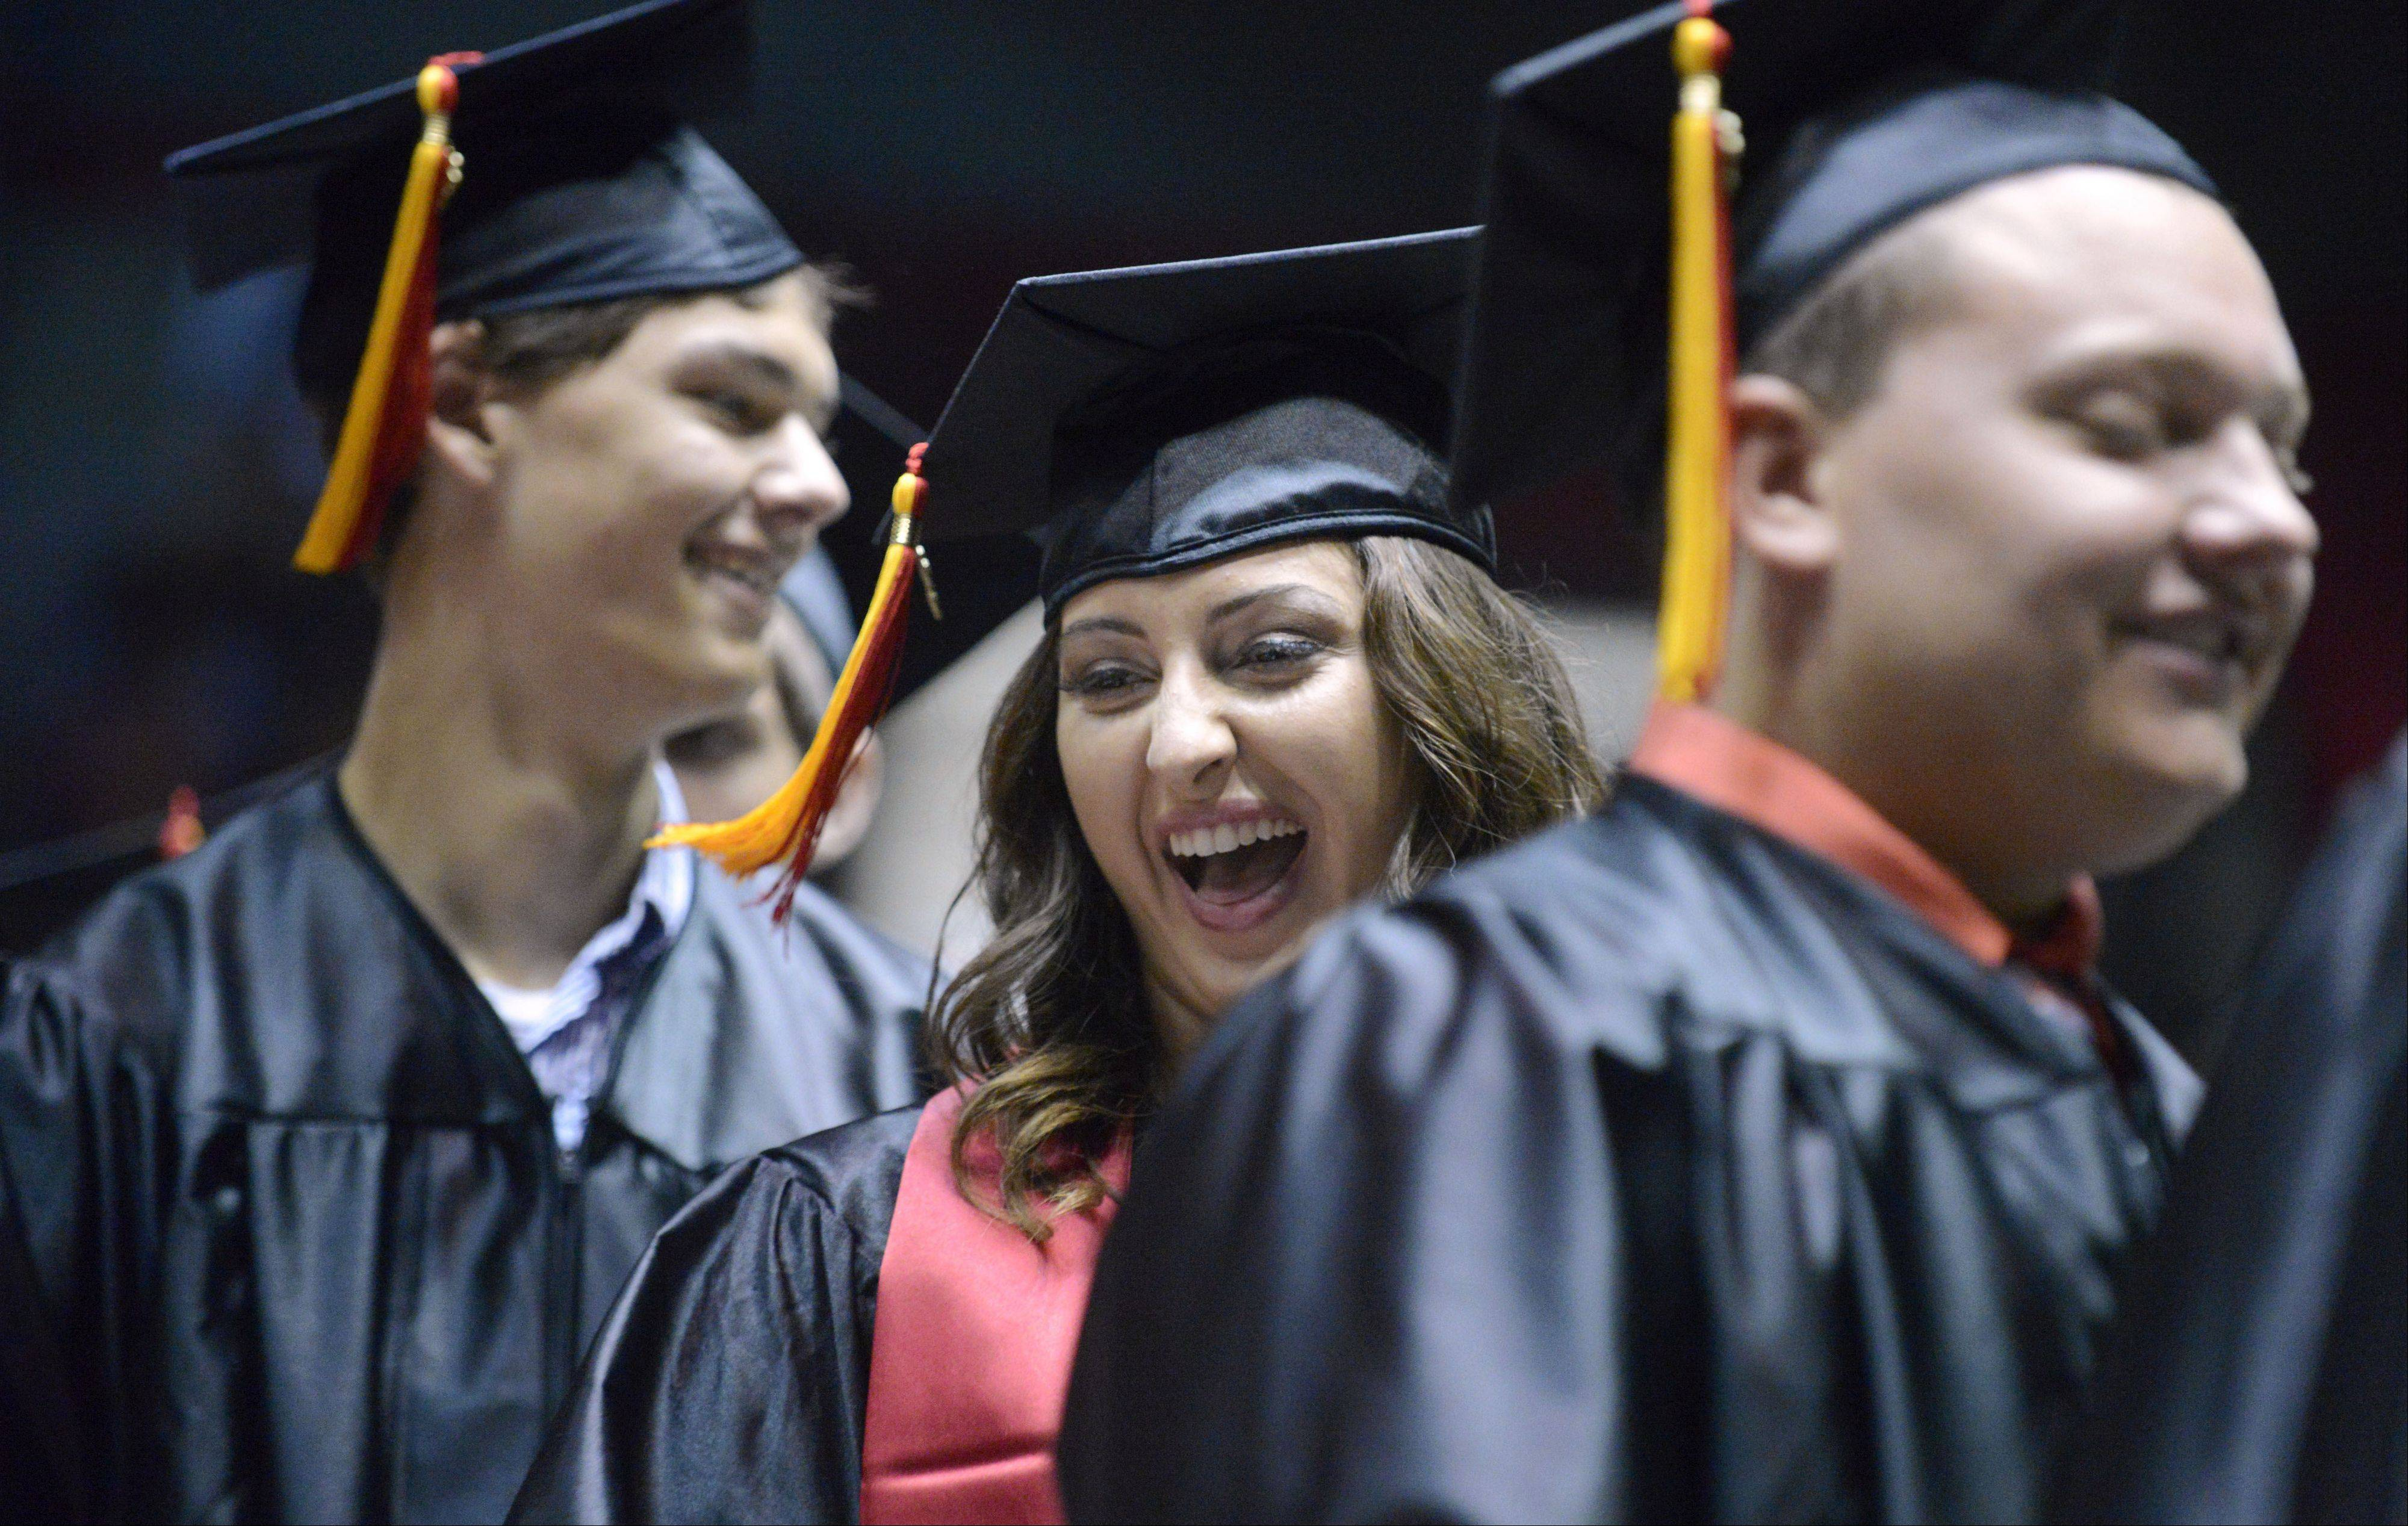 Anna Chorneyko laughs with classmates as her row prepares to go onstage to receive their diplomas at Batavia High School's commencement ceremony at the NIU Convocation Center on Friday, May 31.